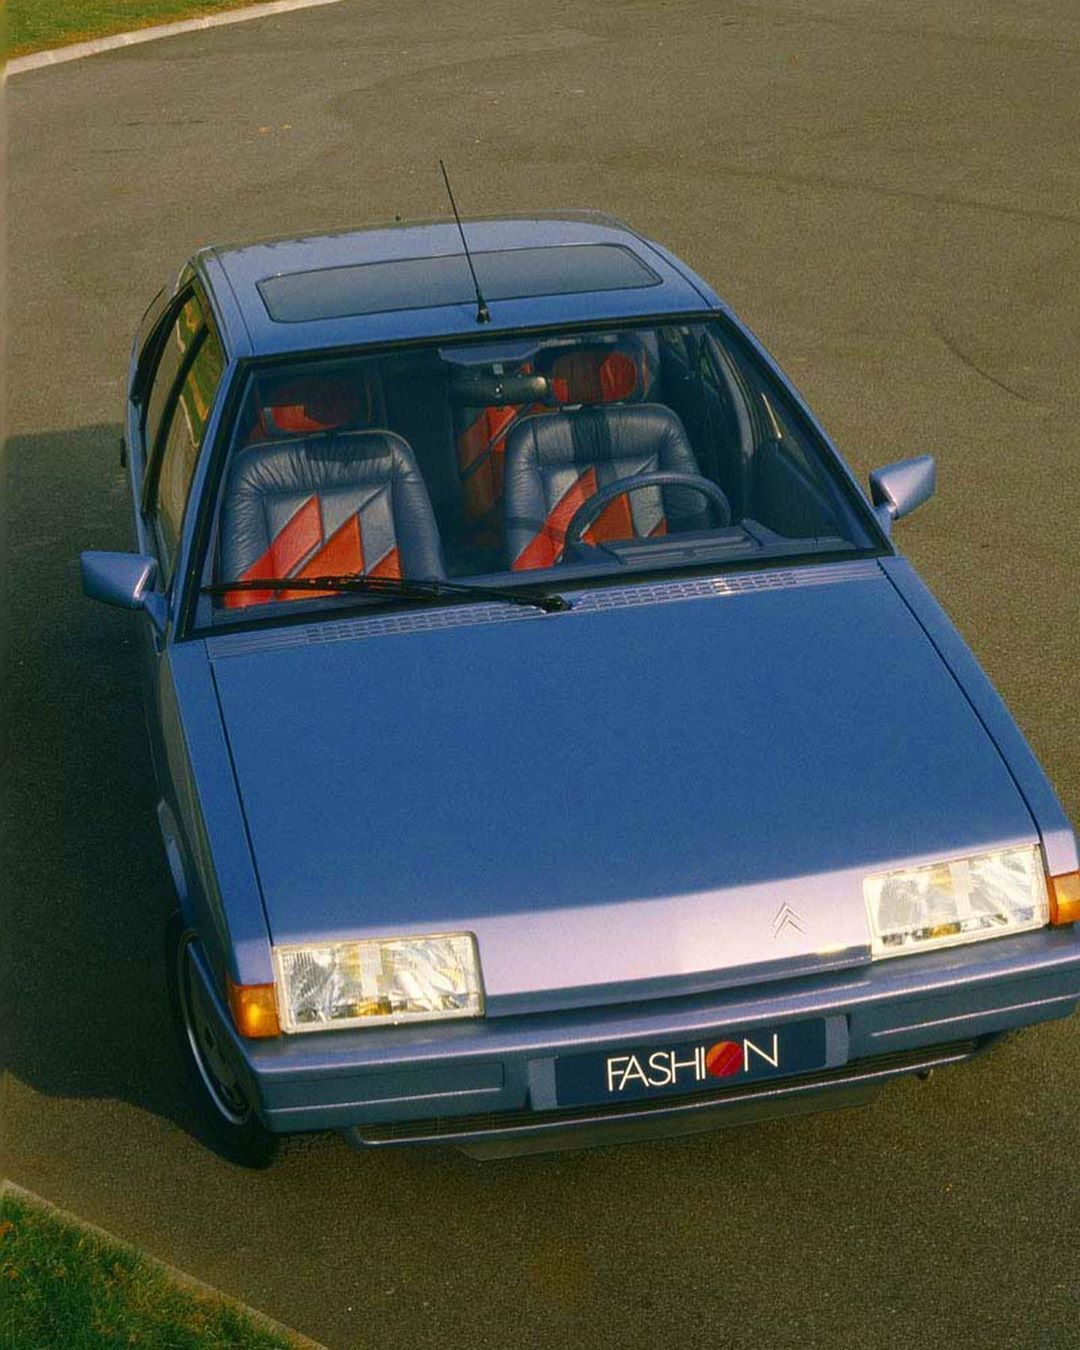 80s Aesthetics On Instagram Swipe Ofc There Was A Car Called Fashion In The 80s Citroen Bx Fashion 1983 Inter Citroen Car European Cars